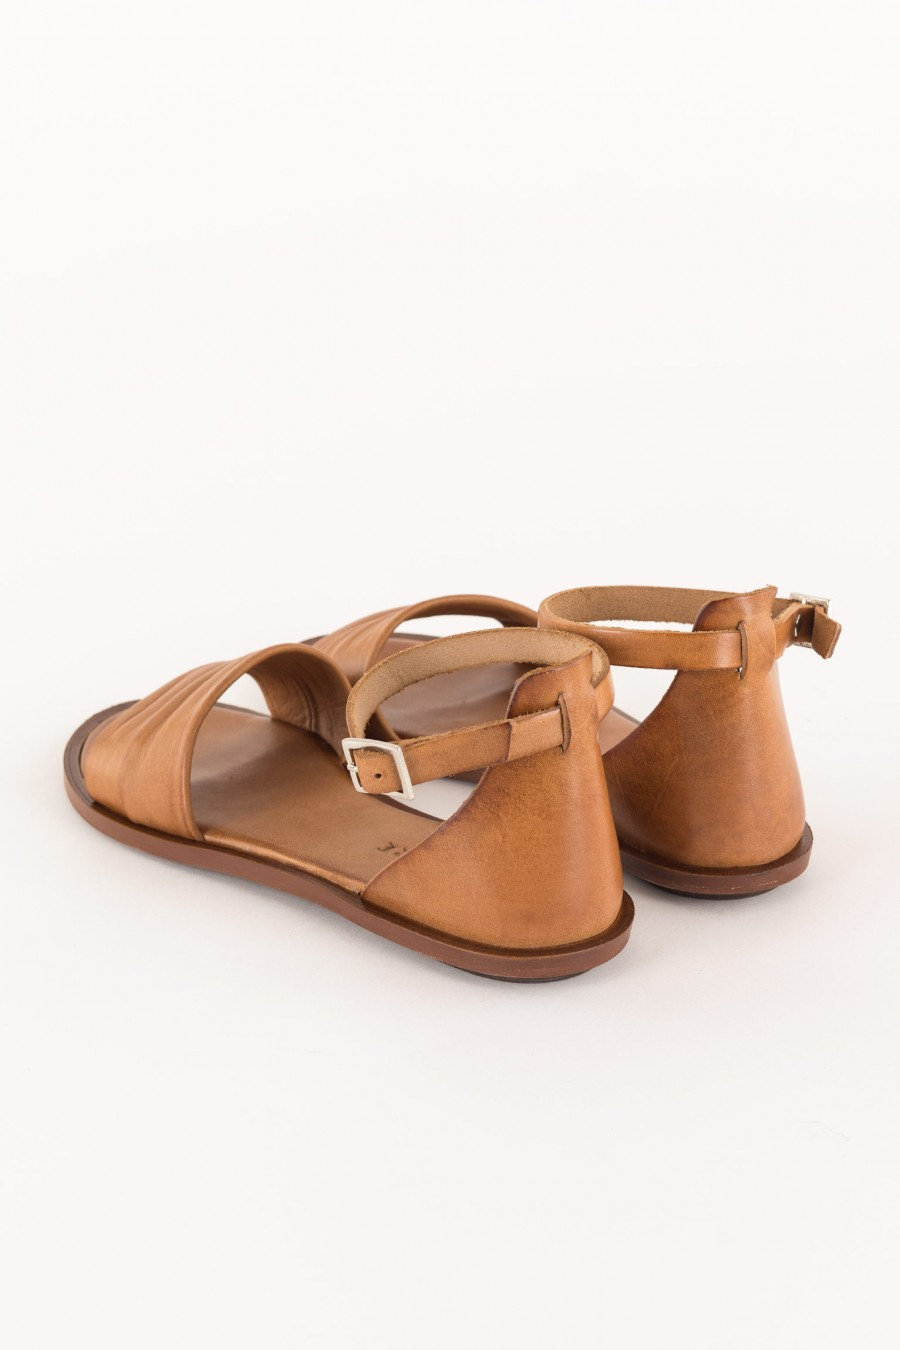 sandal with band